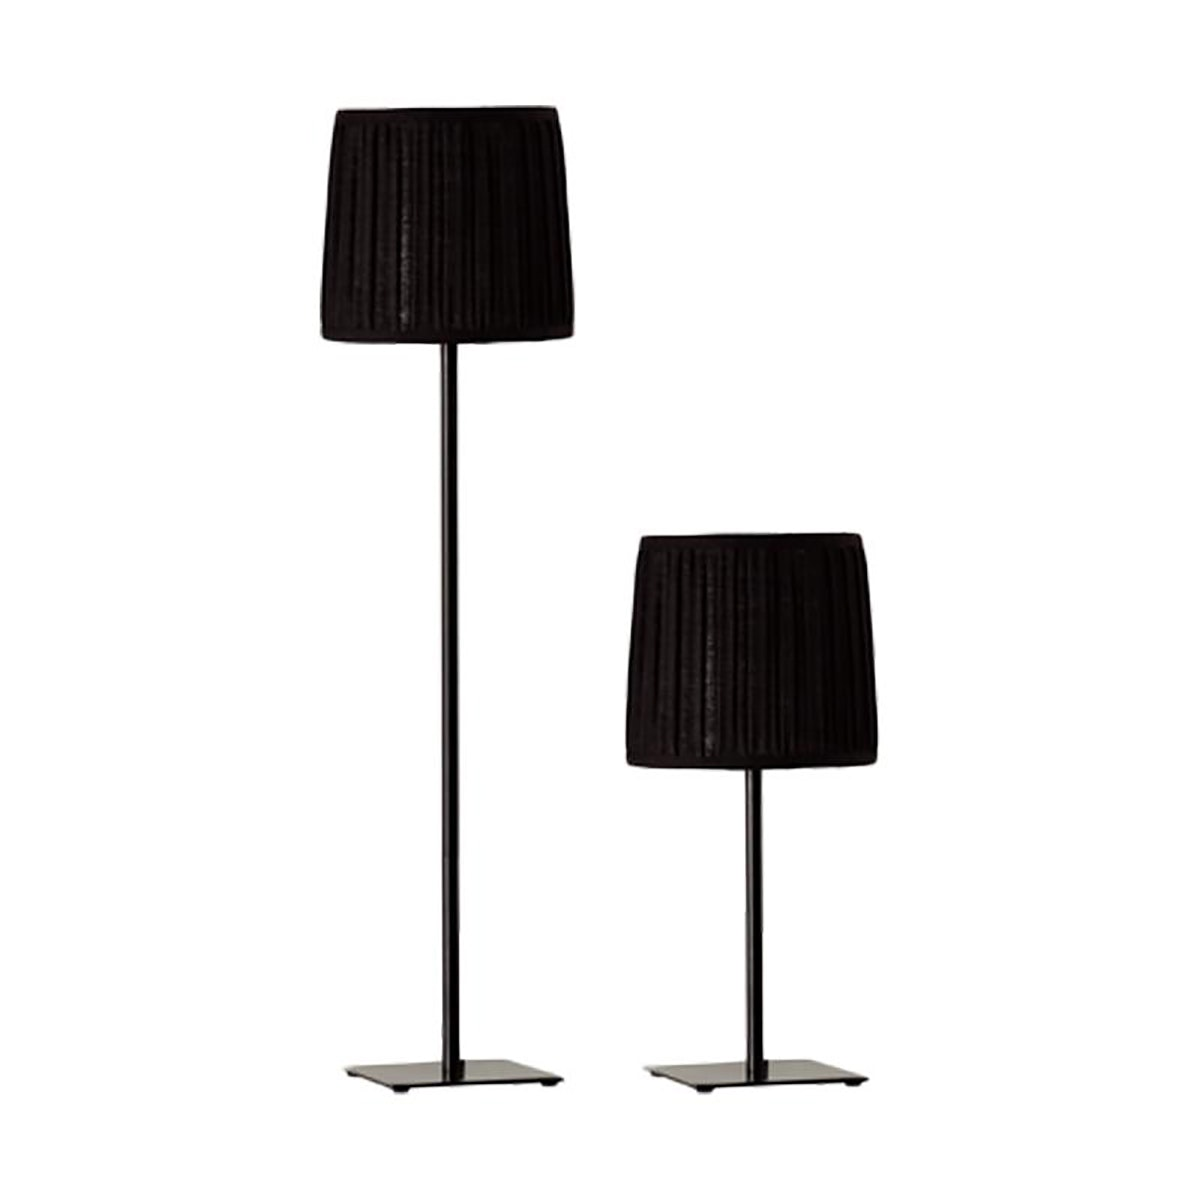 3+PROJECTS Combo Set (1 Table Lamp + 1 Floor Lamp) Black 3+DL-1276-BL-VG